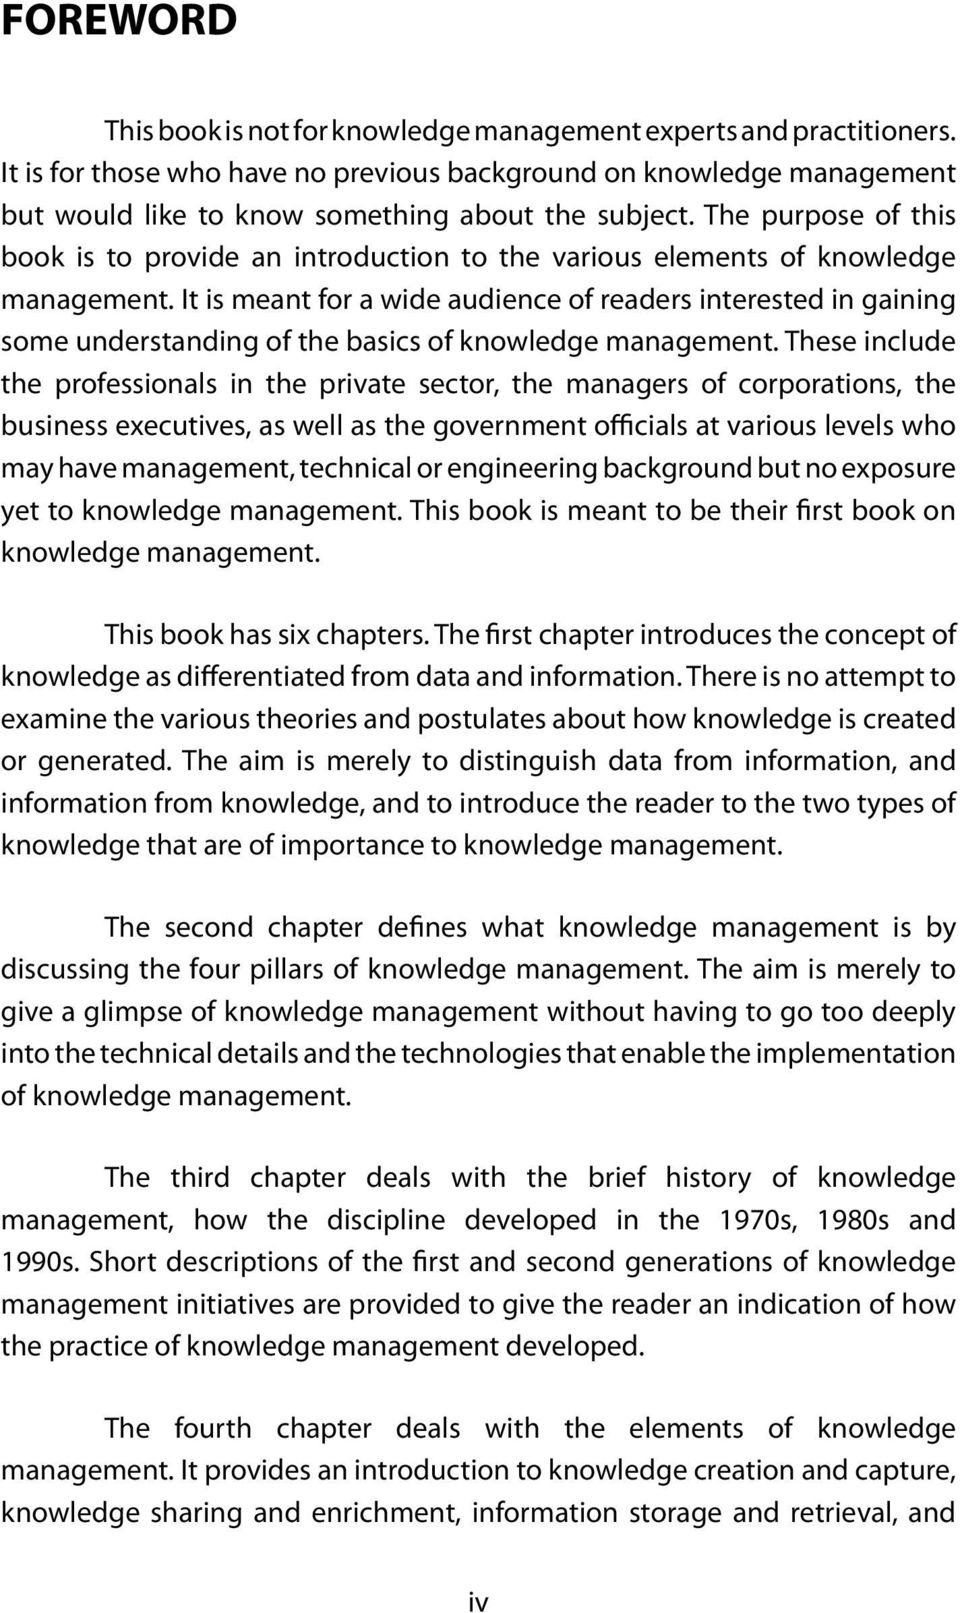 The purpose of this book is to provide an introduction to the various elements of knowledge management.